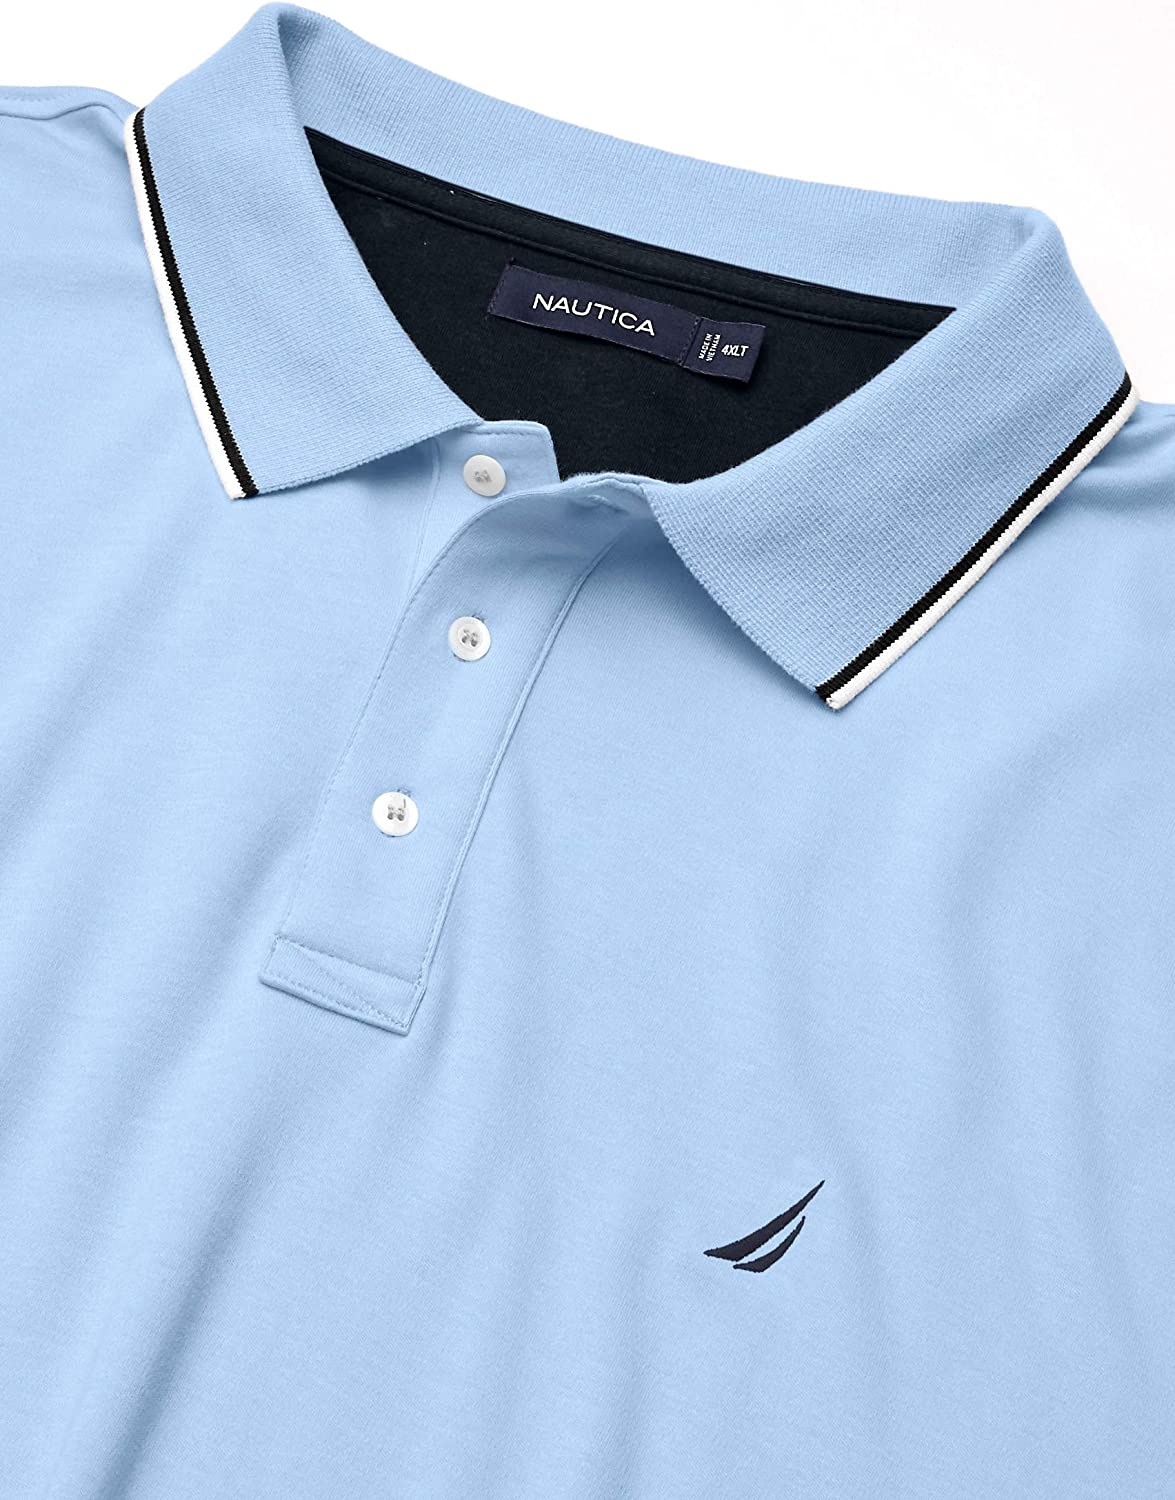 Nautica Mens Classic Fit Short Sleeve Solid Tipped Collar Soft Polo Shirt Polo Shirt